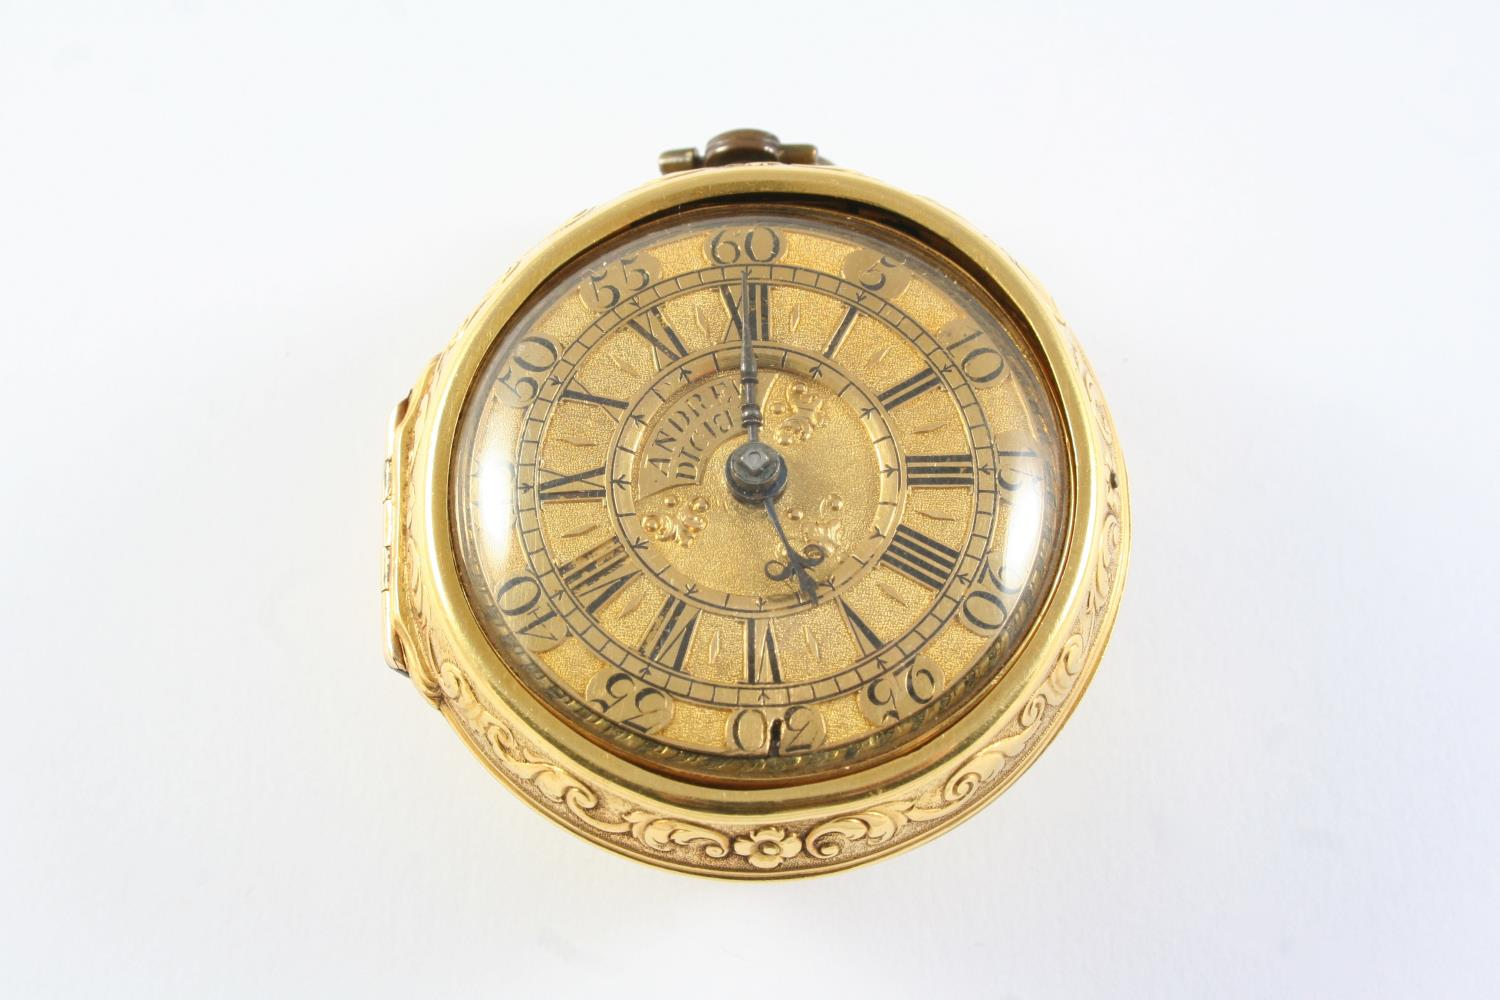 AN 18TH CENTURY GOLD PAIR CASED POCKET WATCH BY ANDREW DICKIE the signed gold dial with Roman